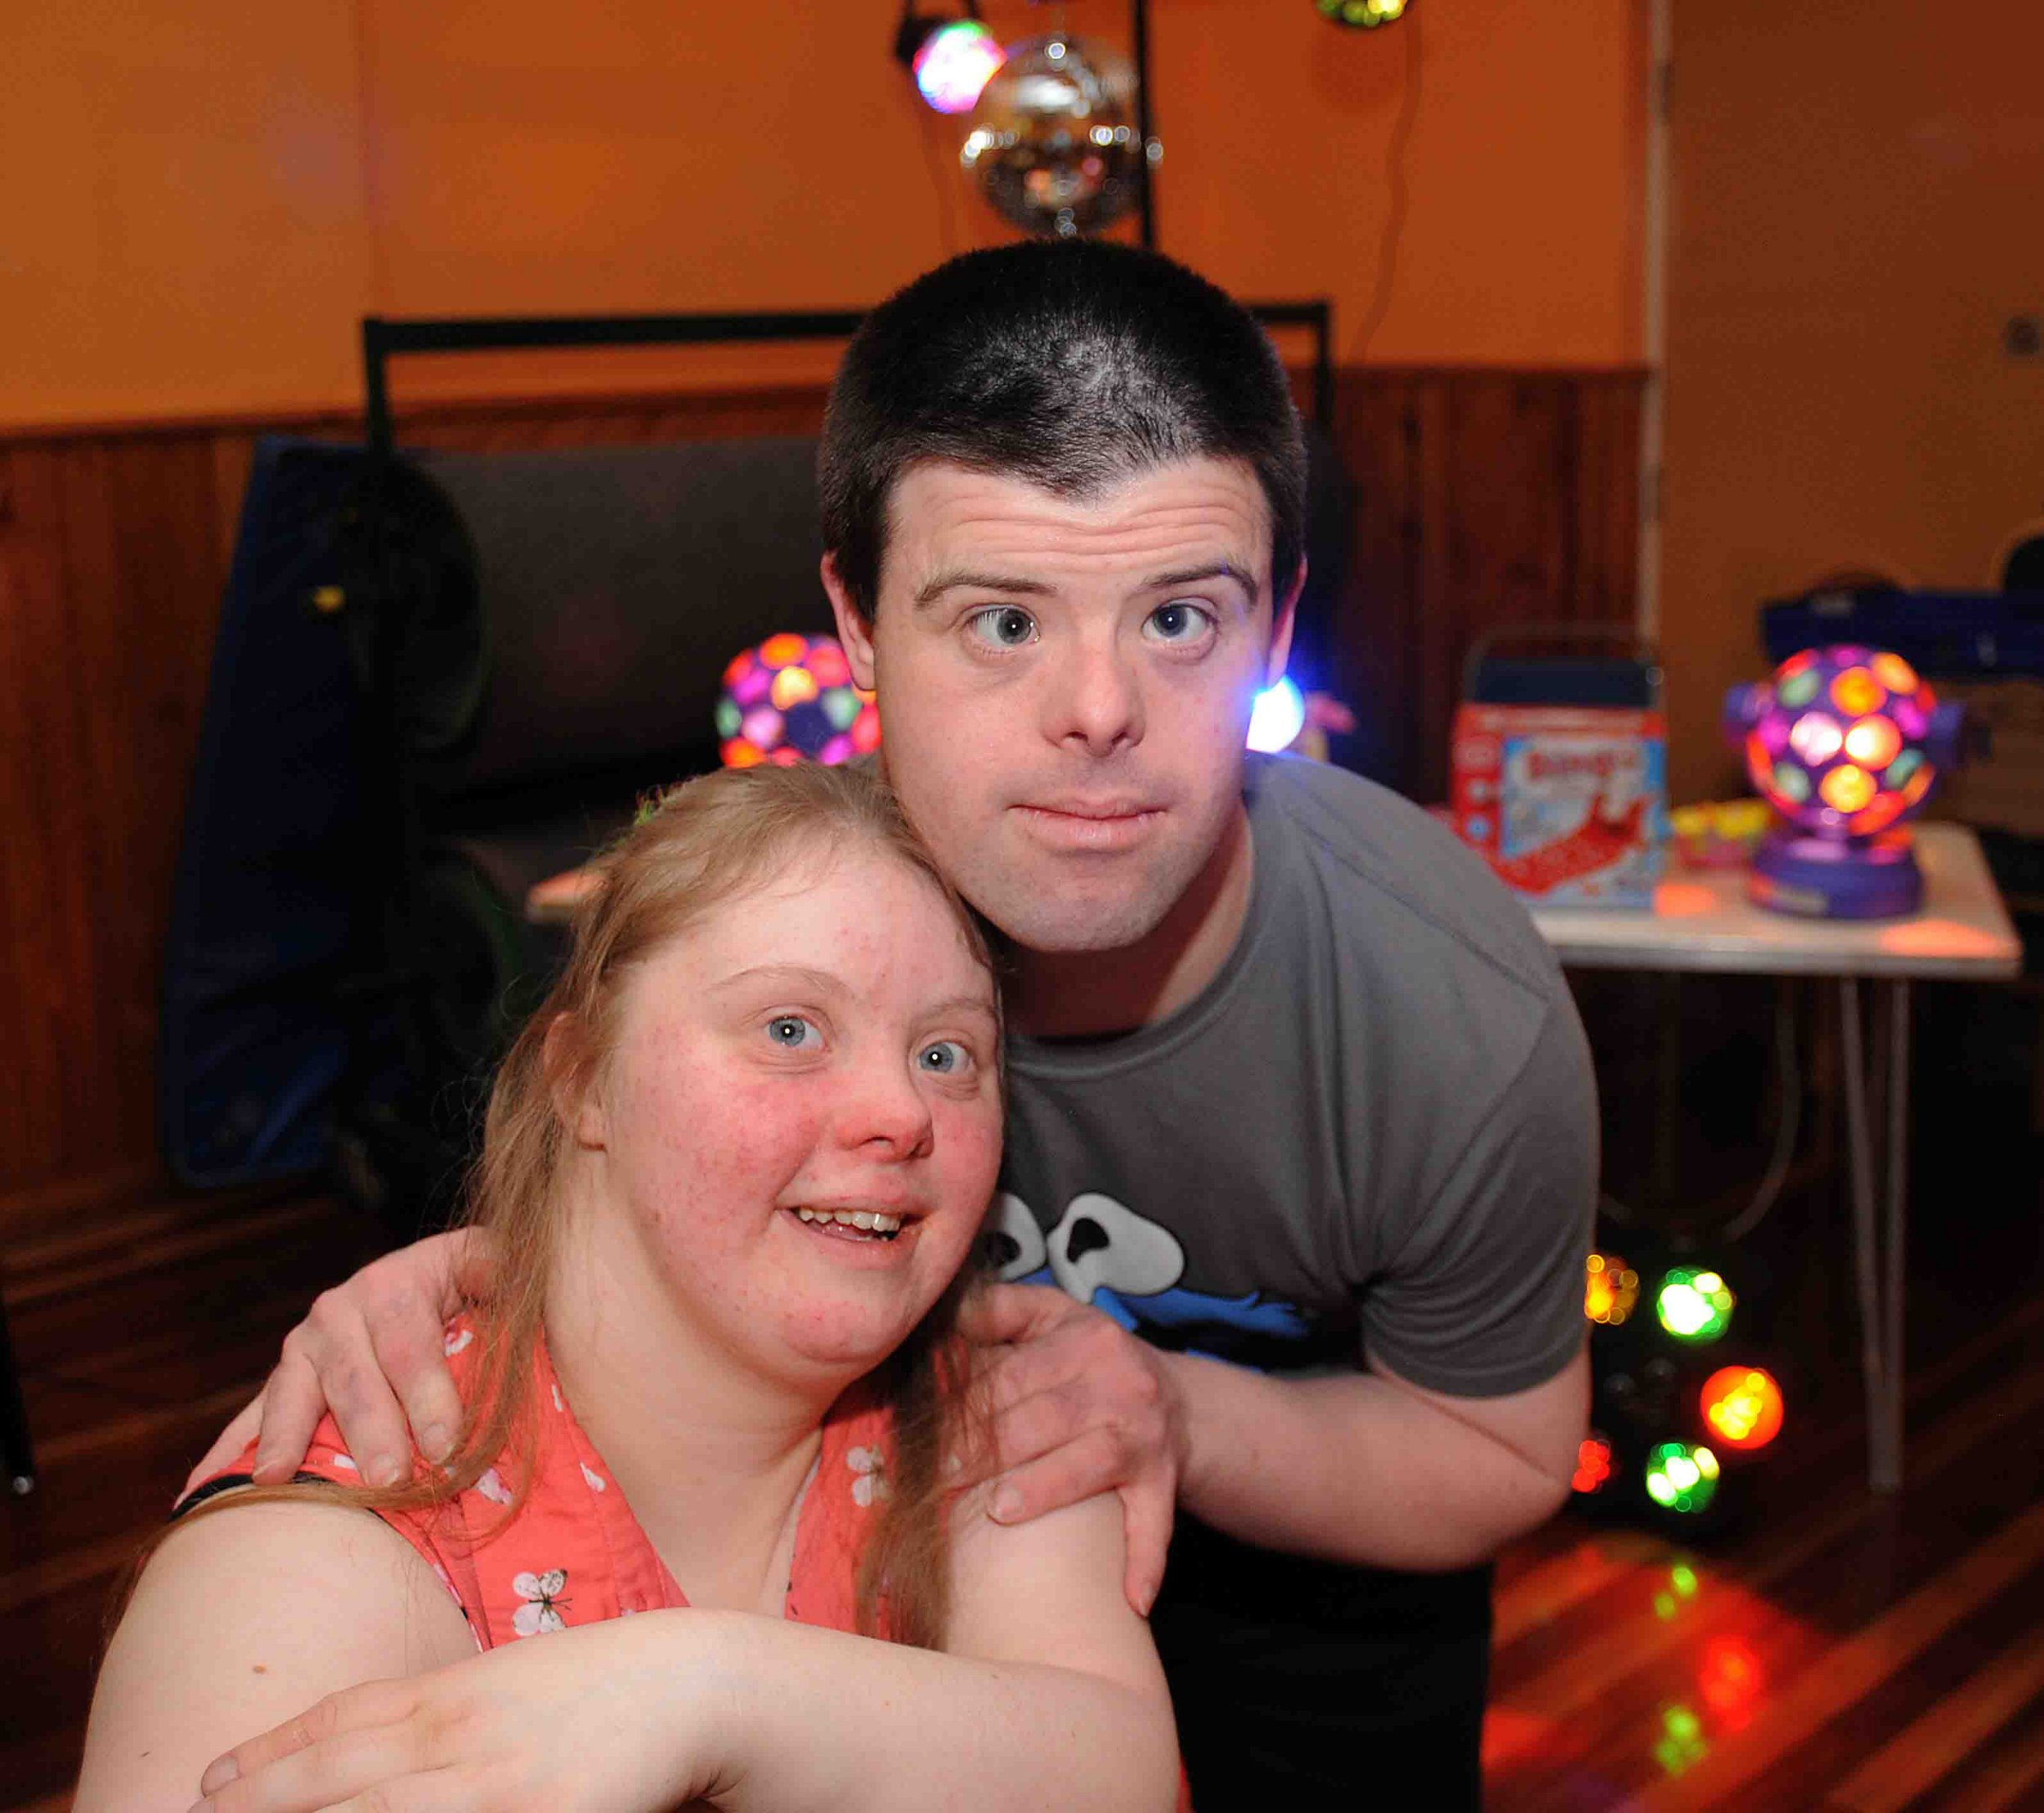 When two young love-struck adults with Down¿s Syndrome were told their kissing at a youth club was ¿inappropriate¿, their mums set up a club for adults with disabilities.nLove blossomed between Niki Wyatt and Samantha Lochrie, who both have Downs Syndrome, after they met at a youth club for people with disabilities.nBut when the pair shared a kiss, they were told their behaviour was unacceptable by staff ¿ despite Niki and Samantha both being aged over 18 at the time.nThat was when their mums and full-time carers, Jackie Wyatt and Kim Lochrie, stepped in and founded a social club in Thornaby that specifically caters for the needs of disabled adults.nnNews. 1st Anniversary of the JK Club at the Robert Atkinson Centre, Thornaby. Jackie Wyatt's son Niky and Kim Lochrie's daughter Samanthann* With Video *